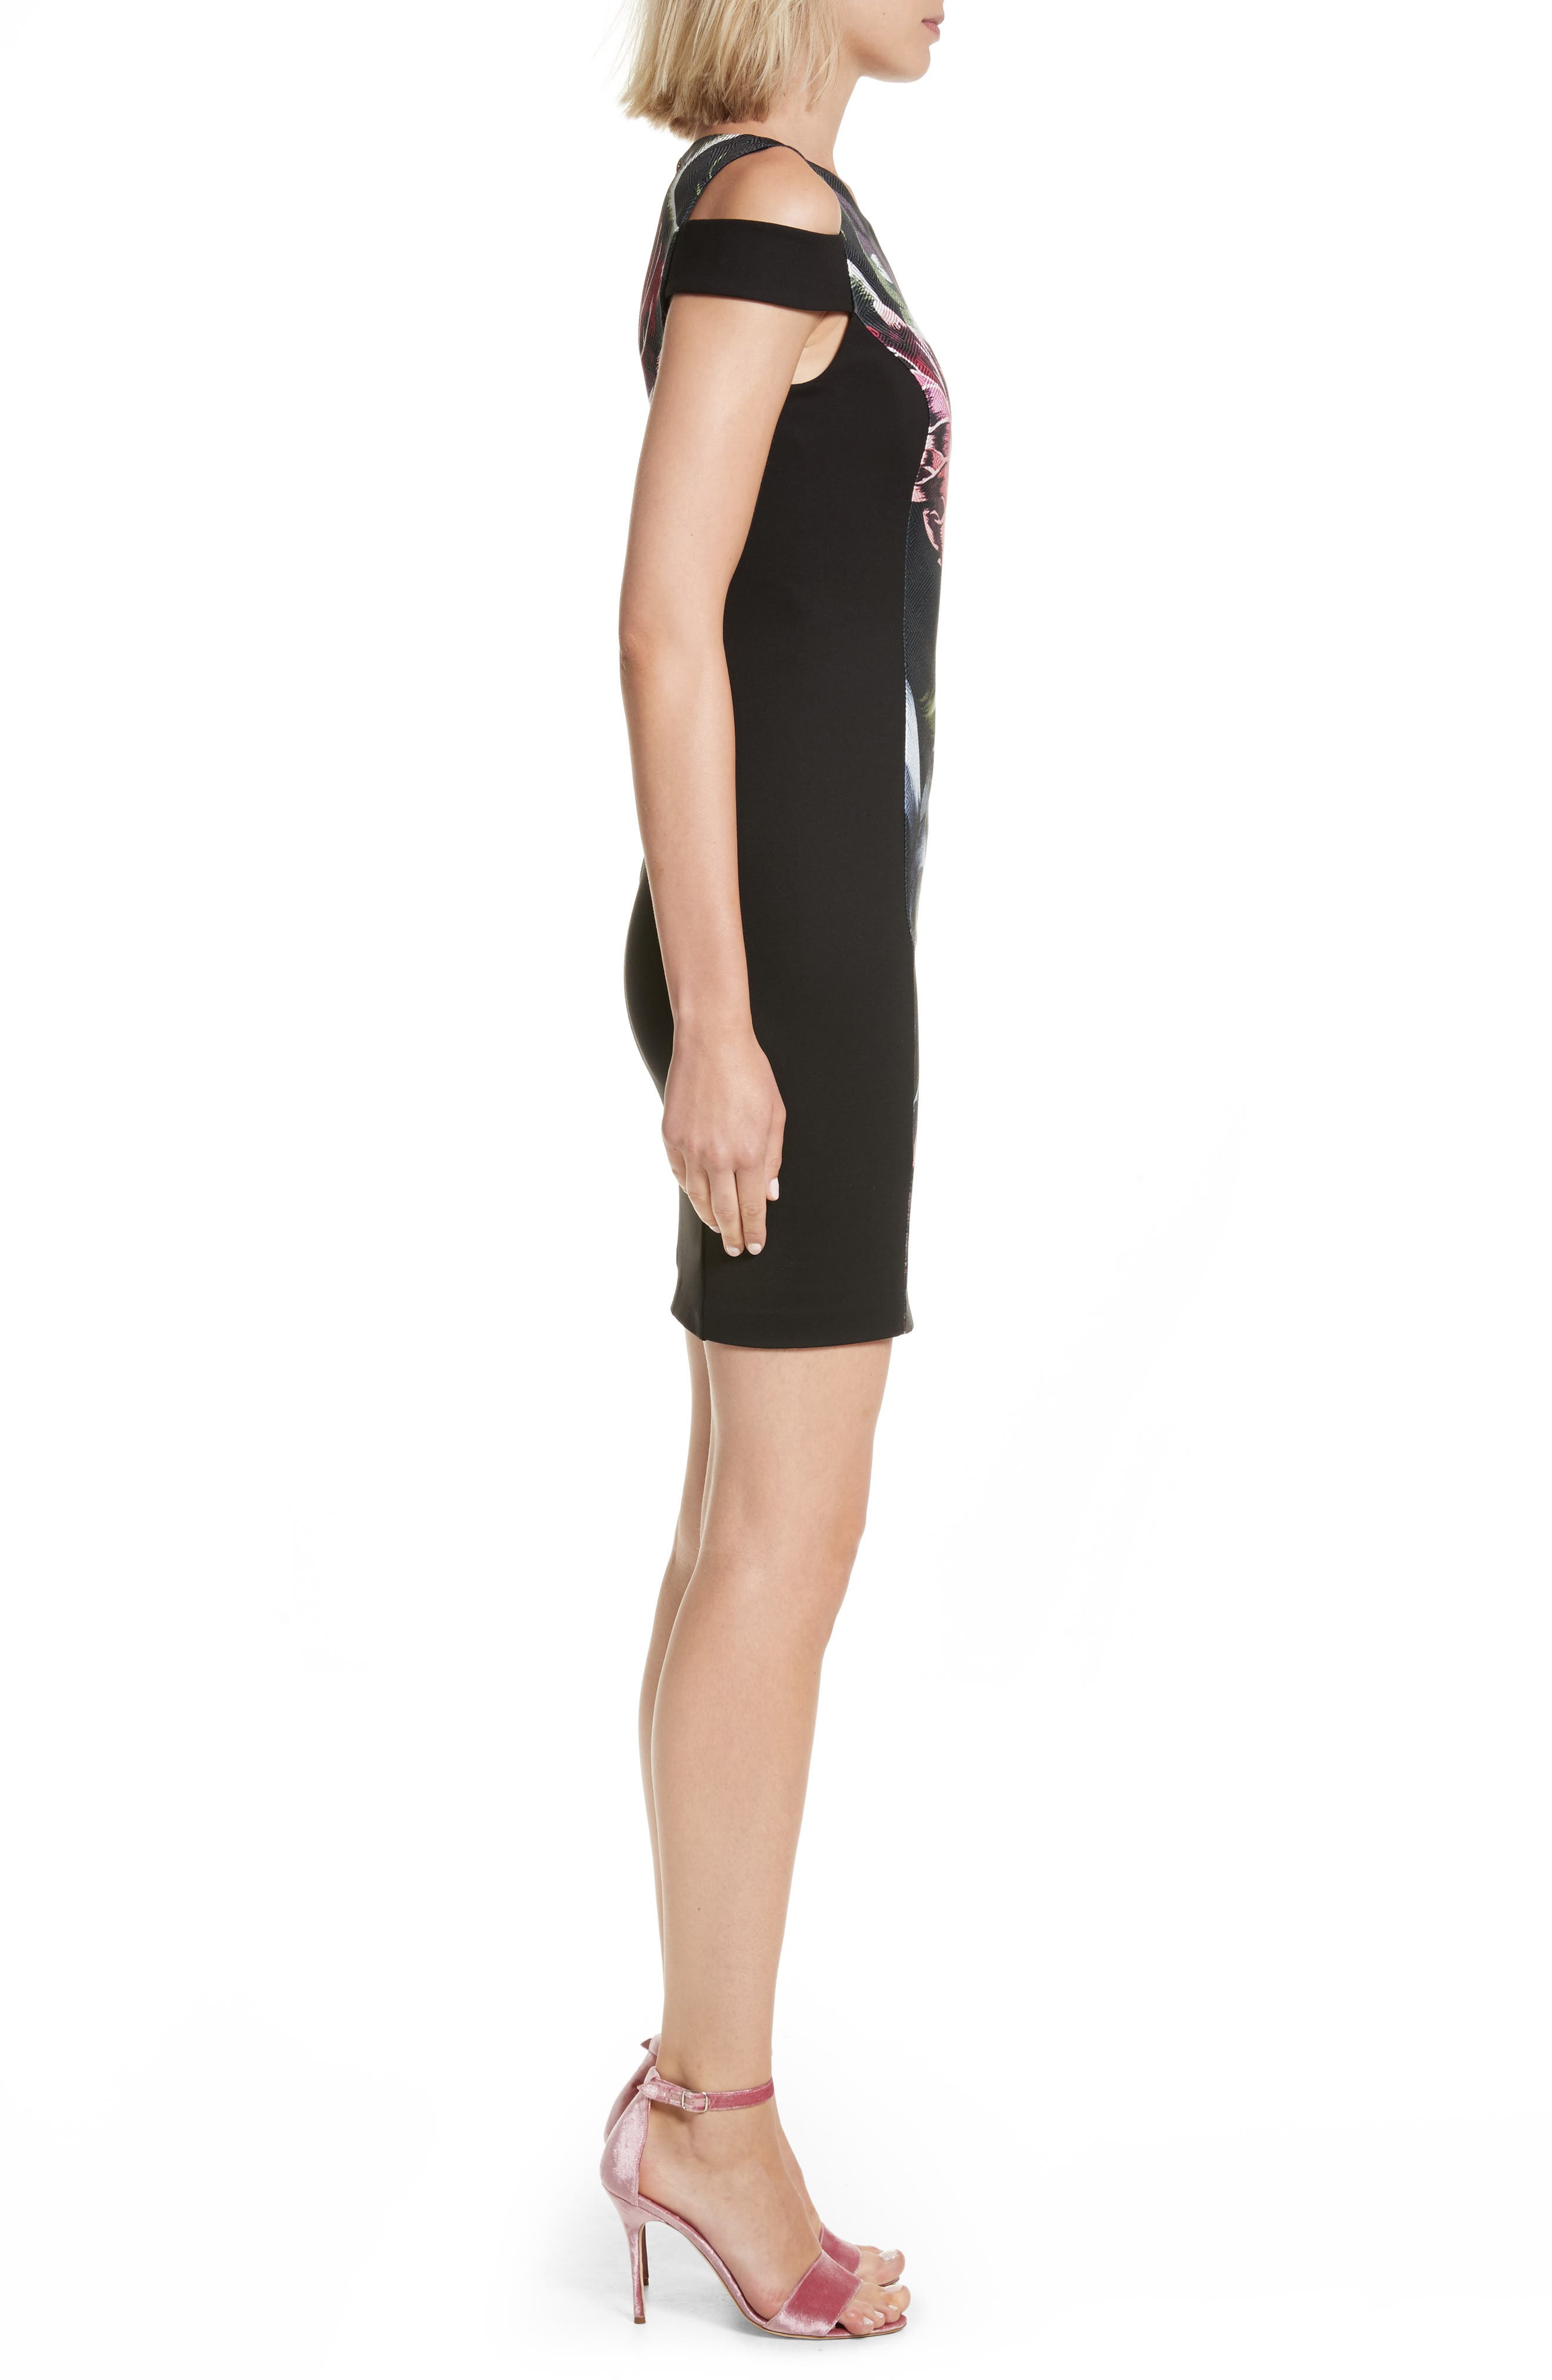 Leeash Eden Body Con Dress,                             Alternate thumbnail 3, color,                             001